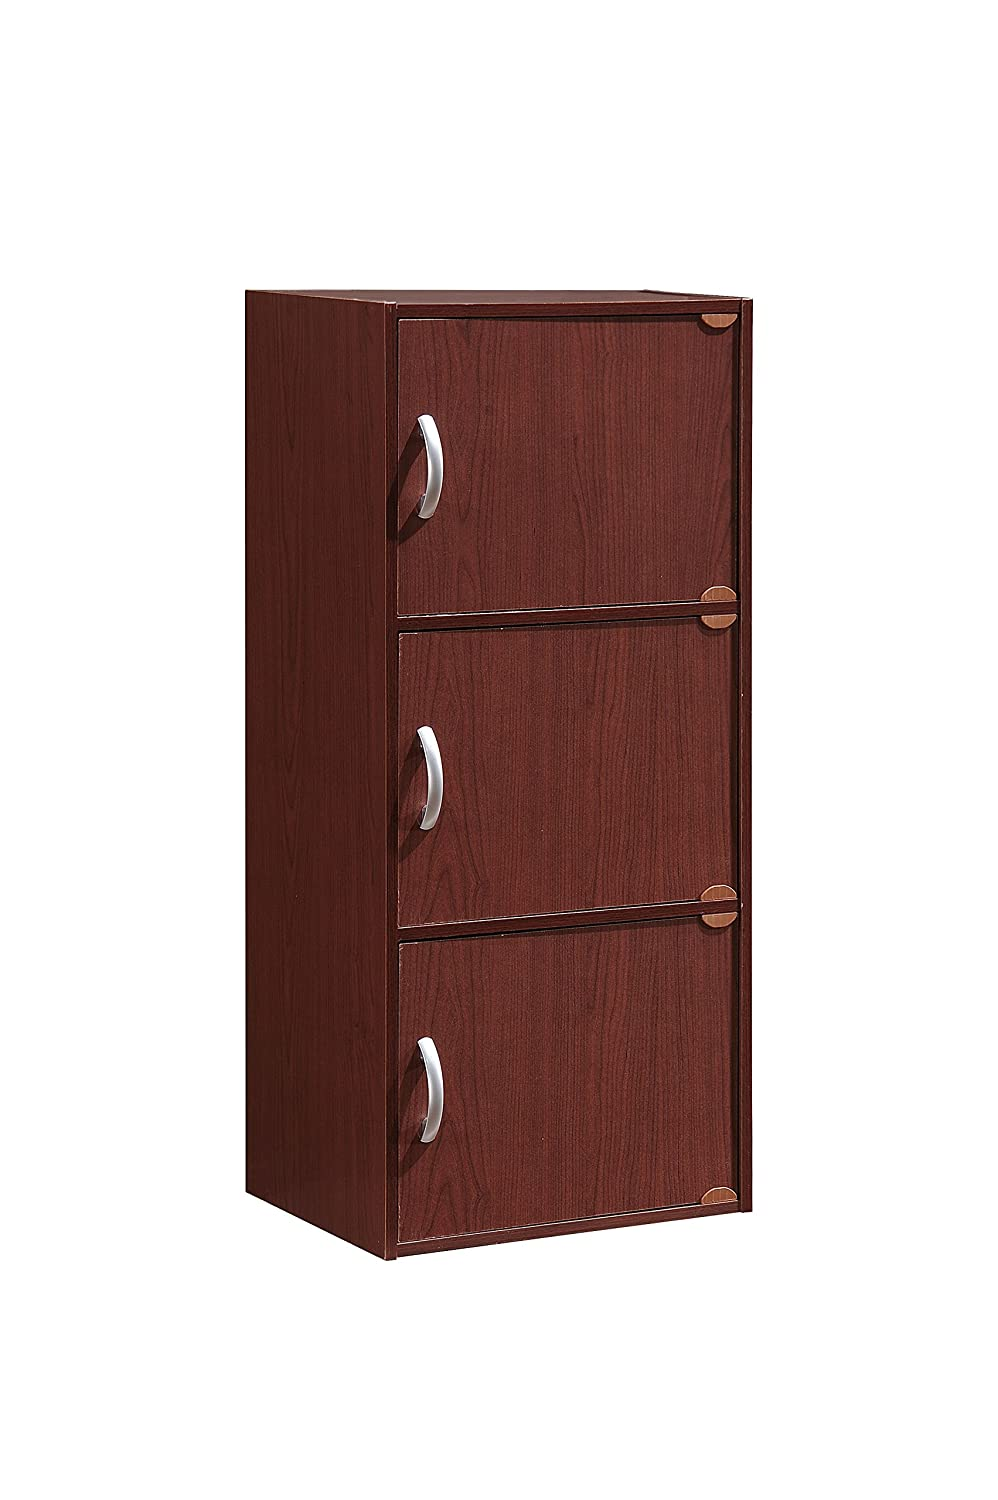 Hodedah 3 Door, Three Shleves, Enclosed Storage Cabinet, Mahogany